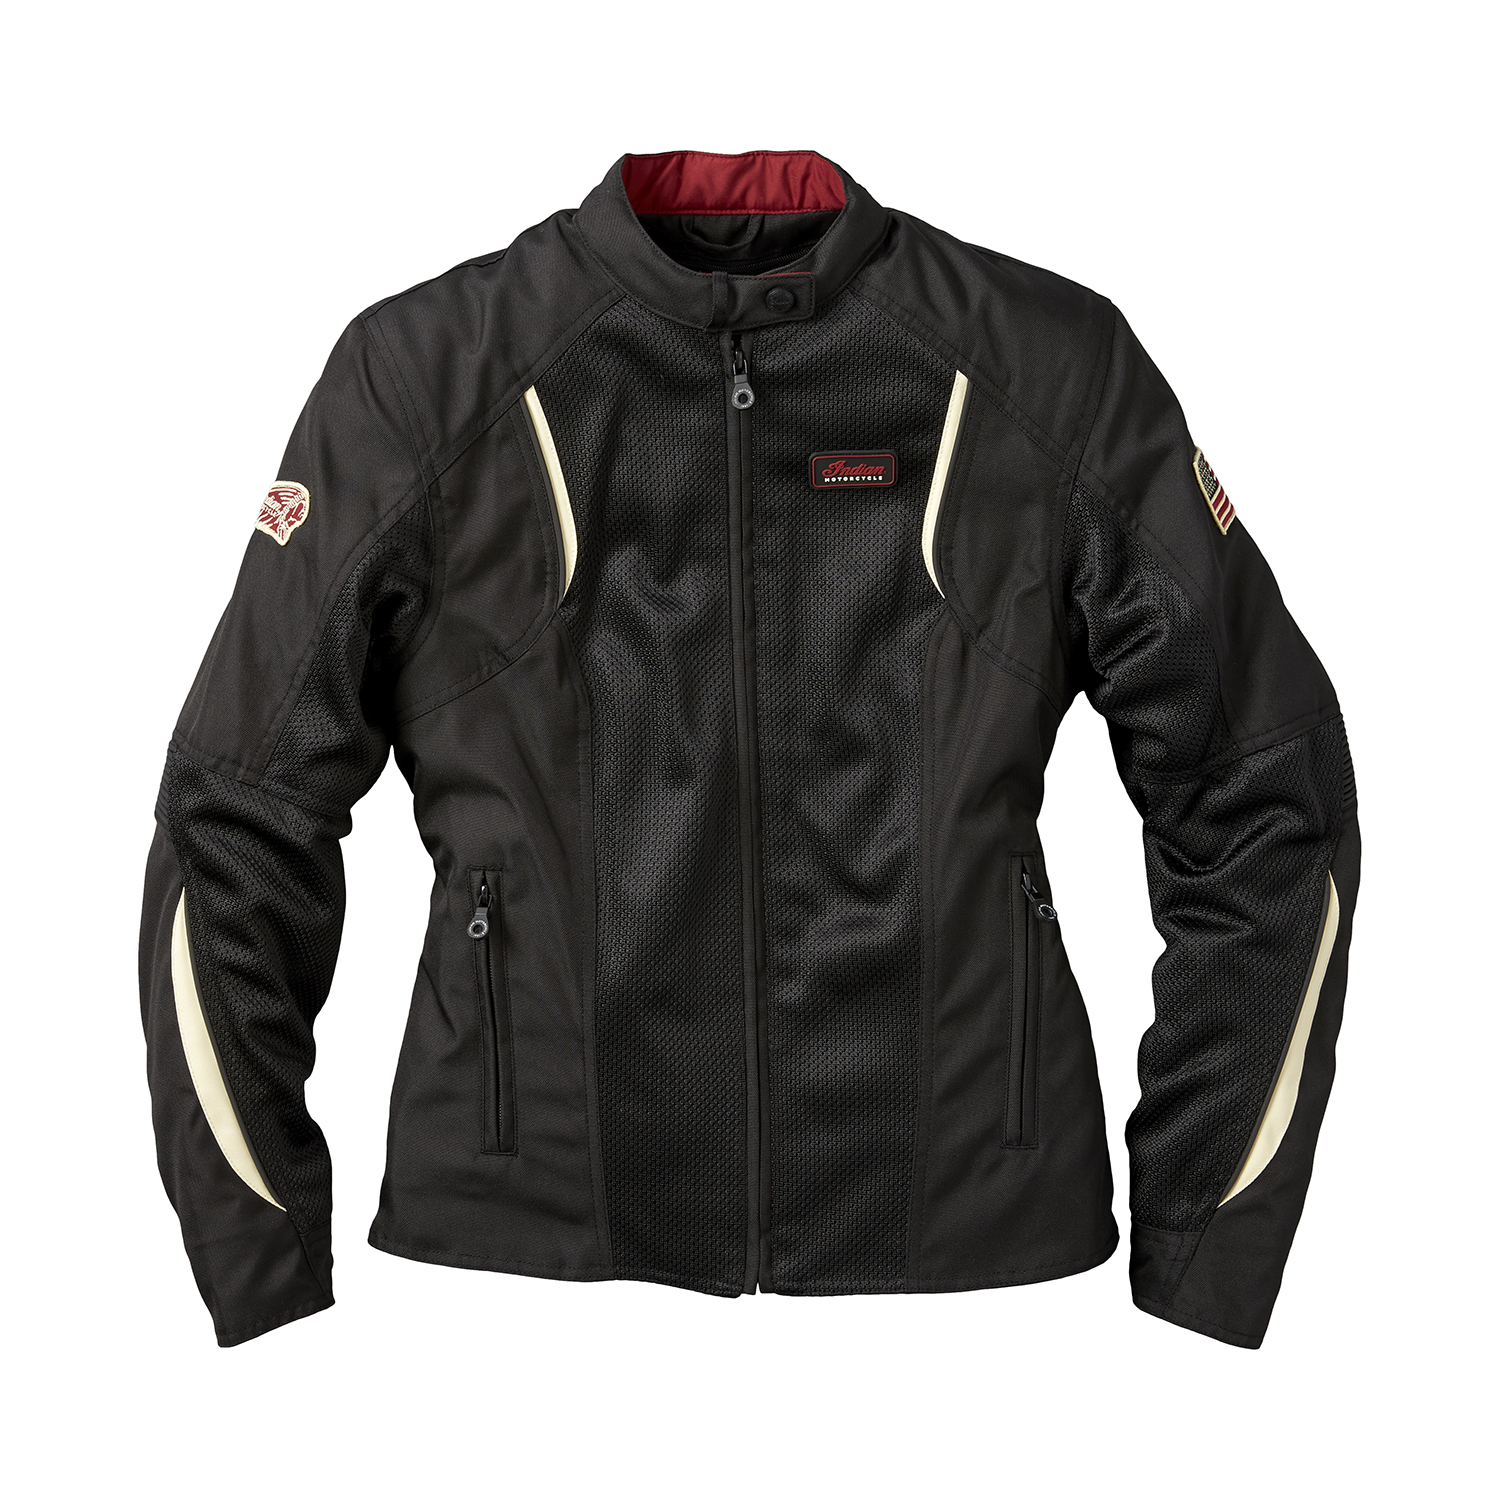 Women's Mesh Springfield 2 Riding Jacket with Removable Lining, Black